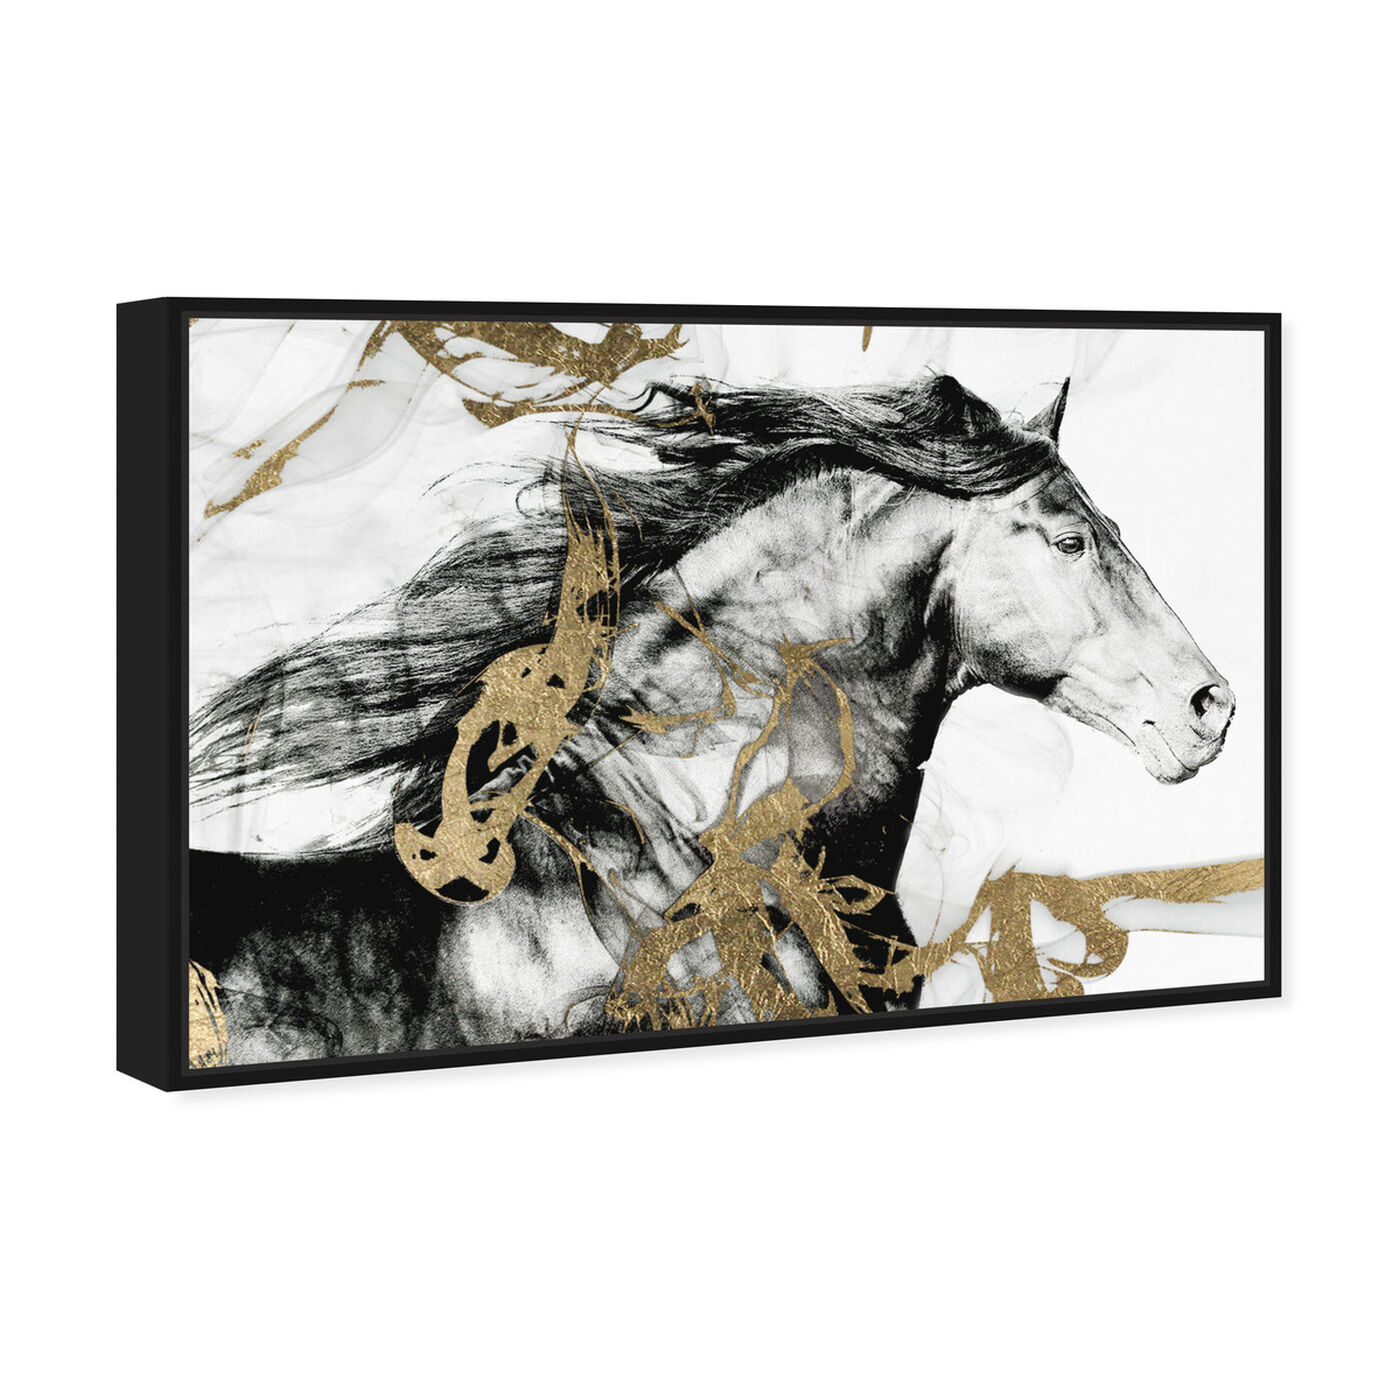 Angled view of Gold and Black Beauty featuring animals and farm animals art.